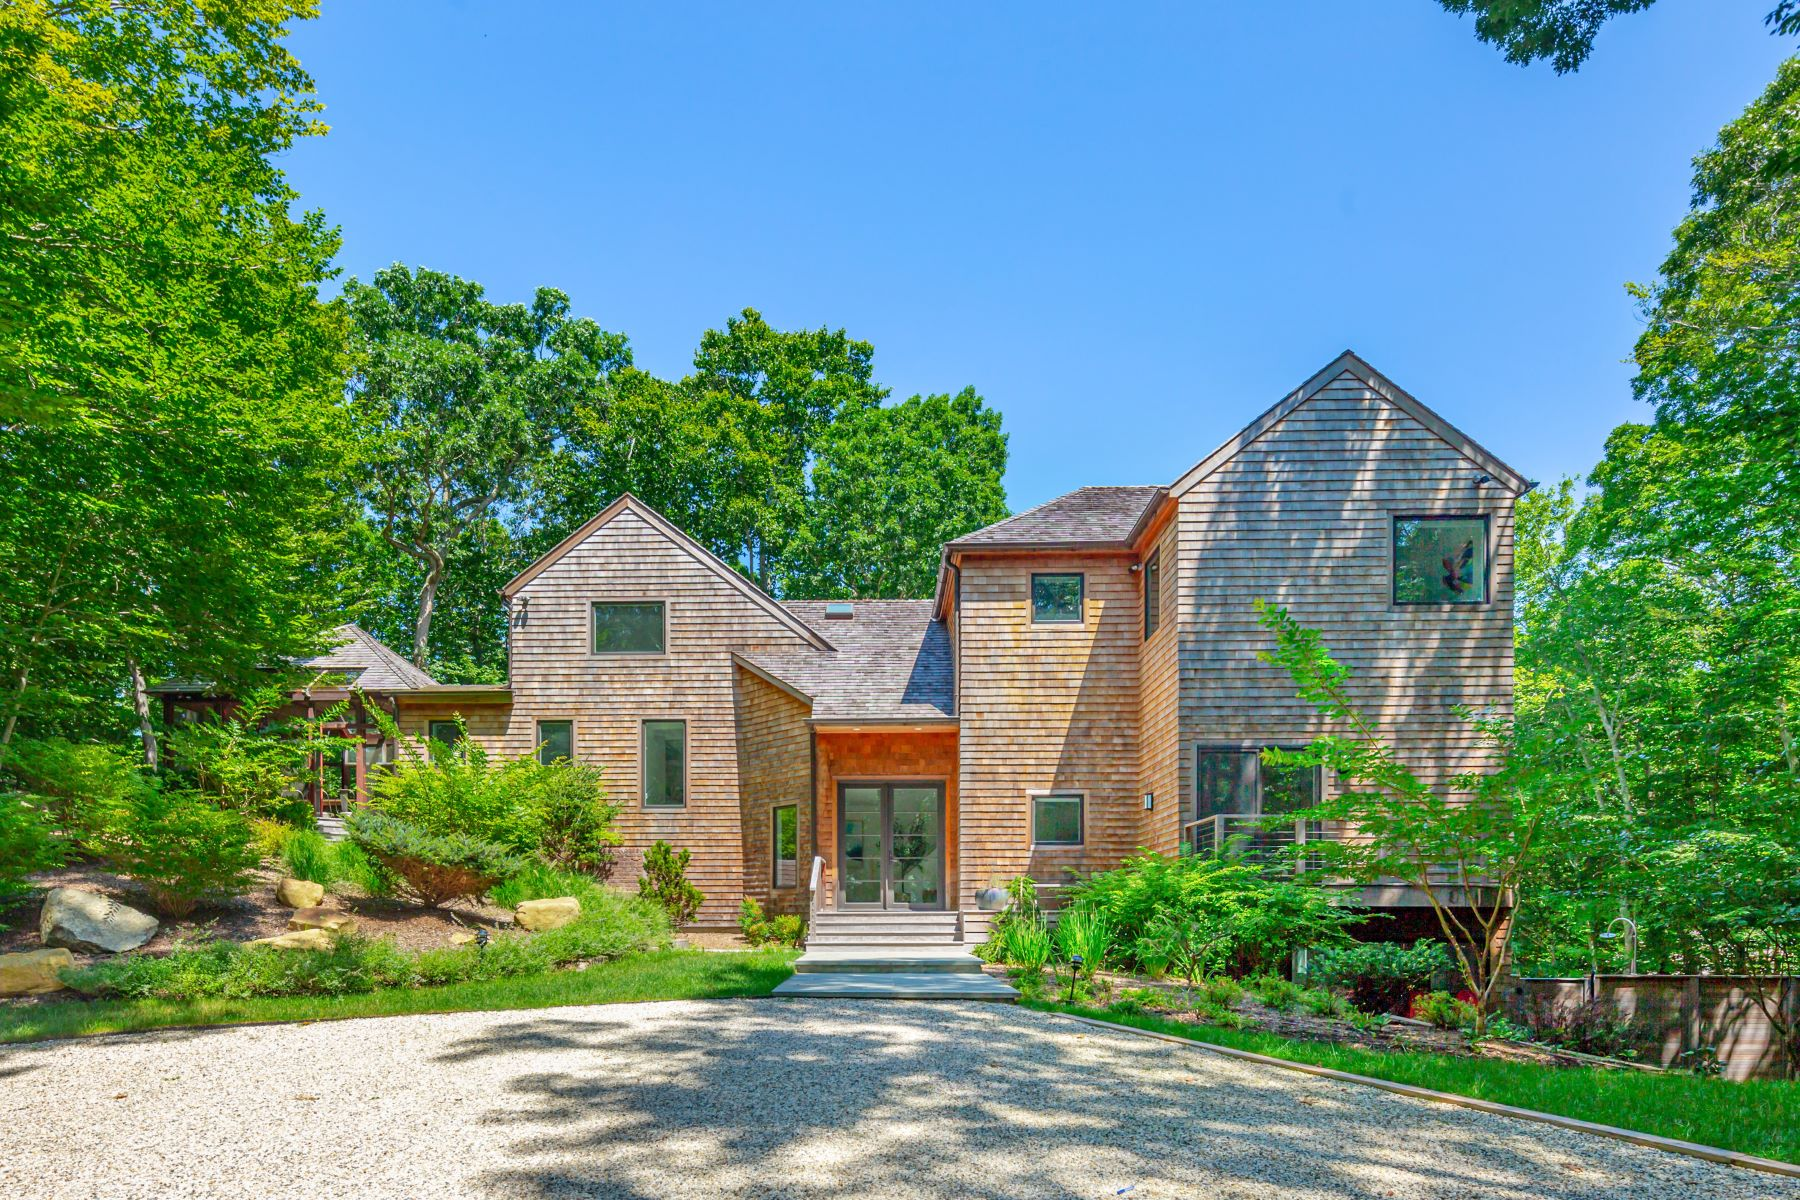 Single Family Homes for Sale at Stylish Home With Lots Of Privacy 5 Bell Place Amagansett, New York 11930 United States